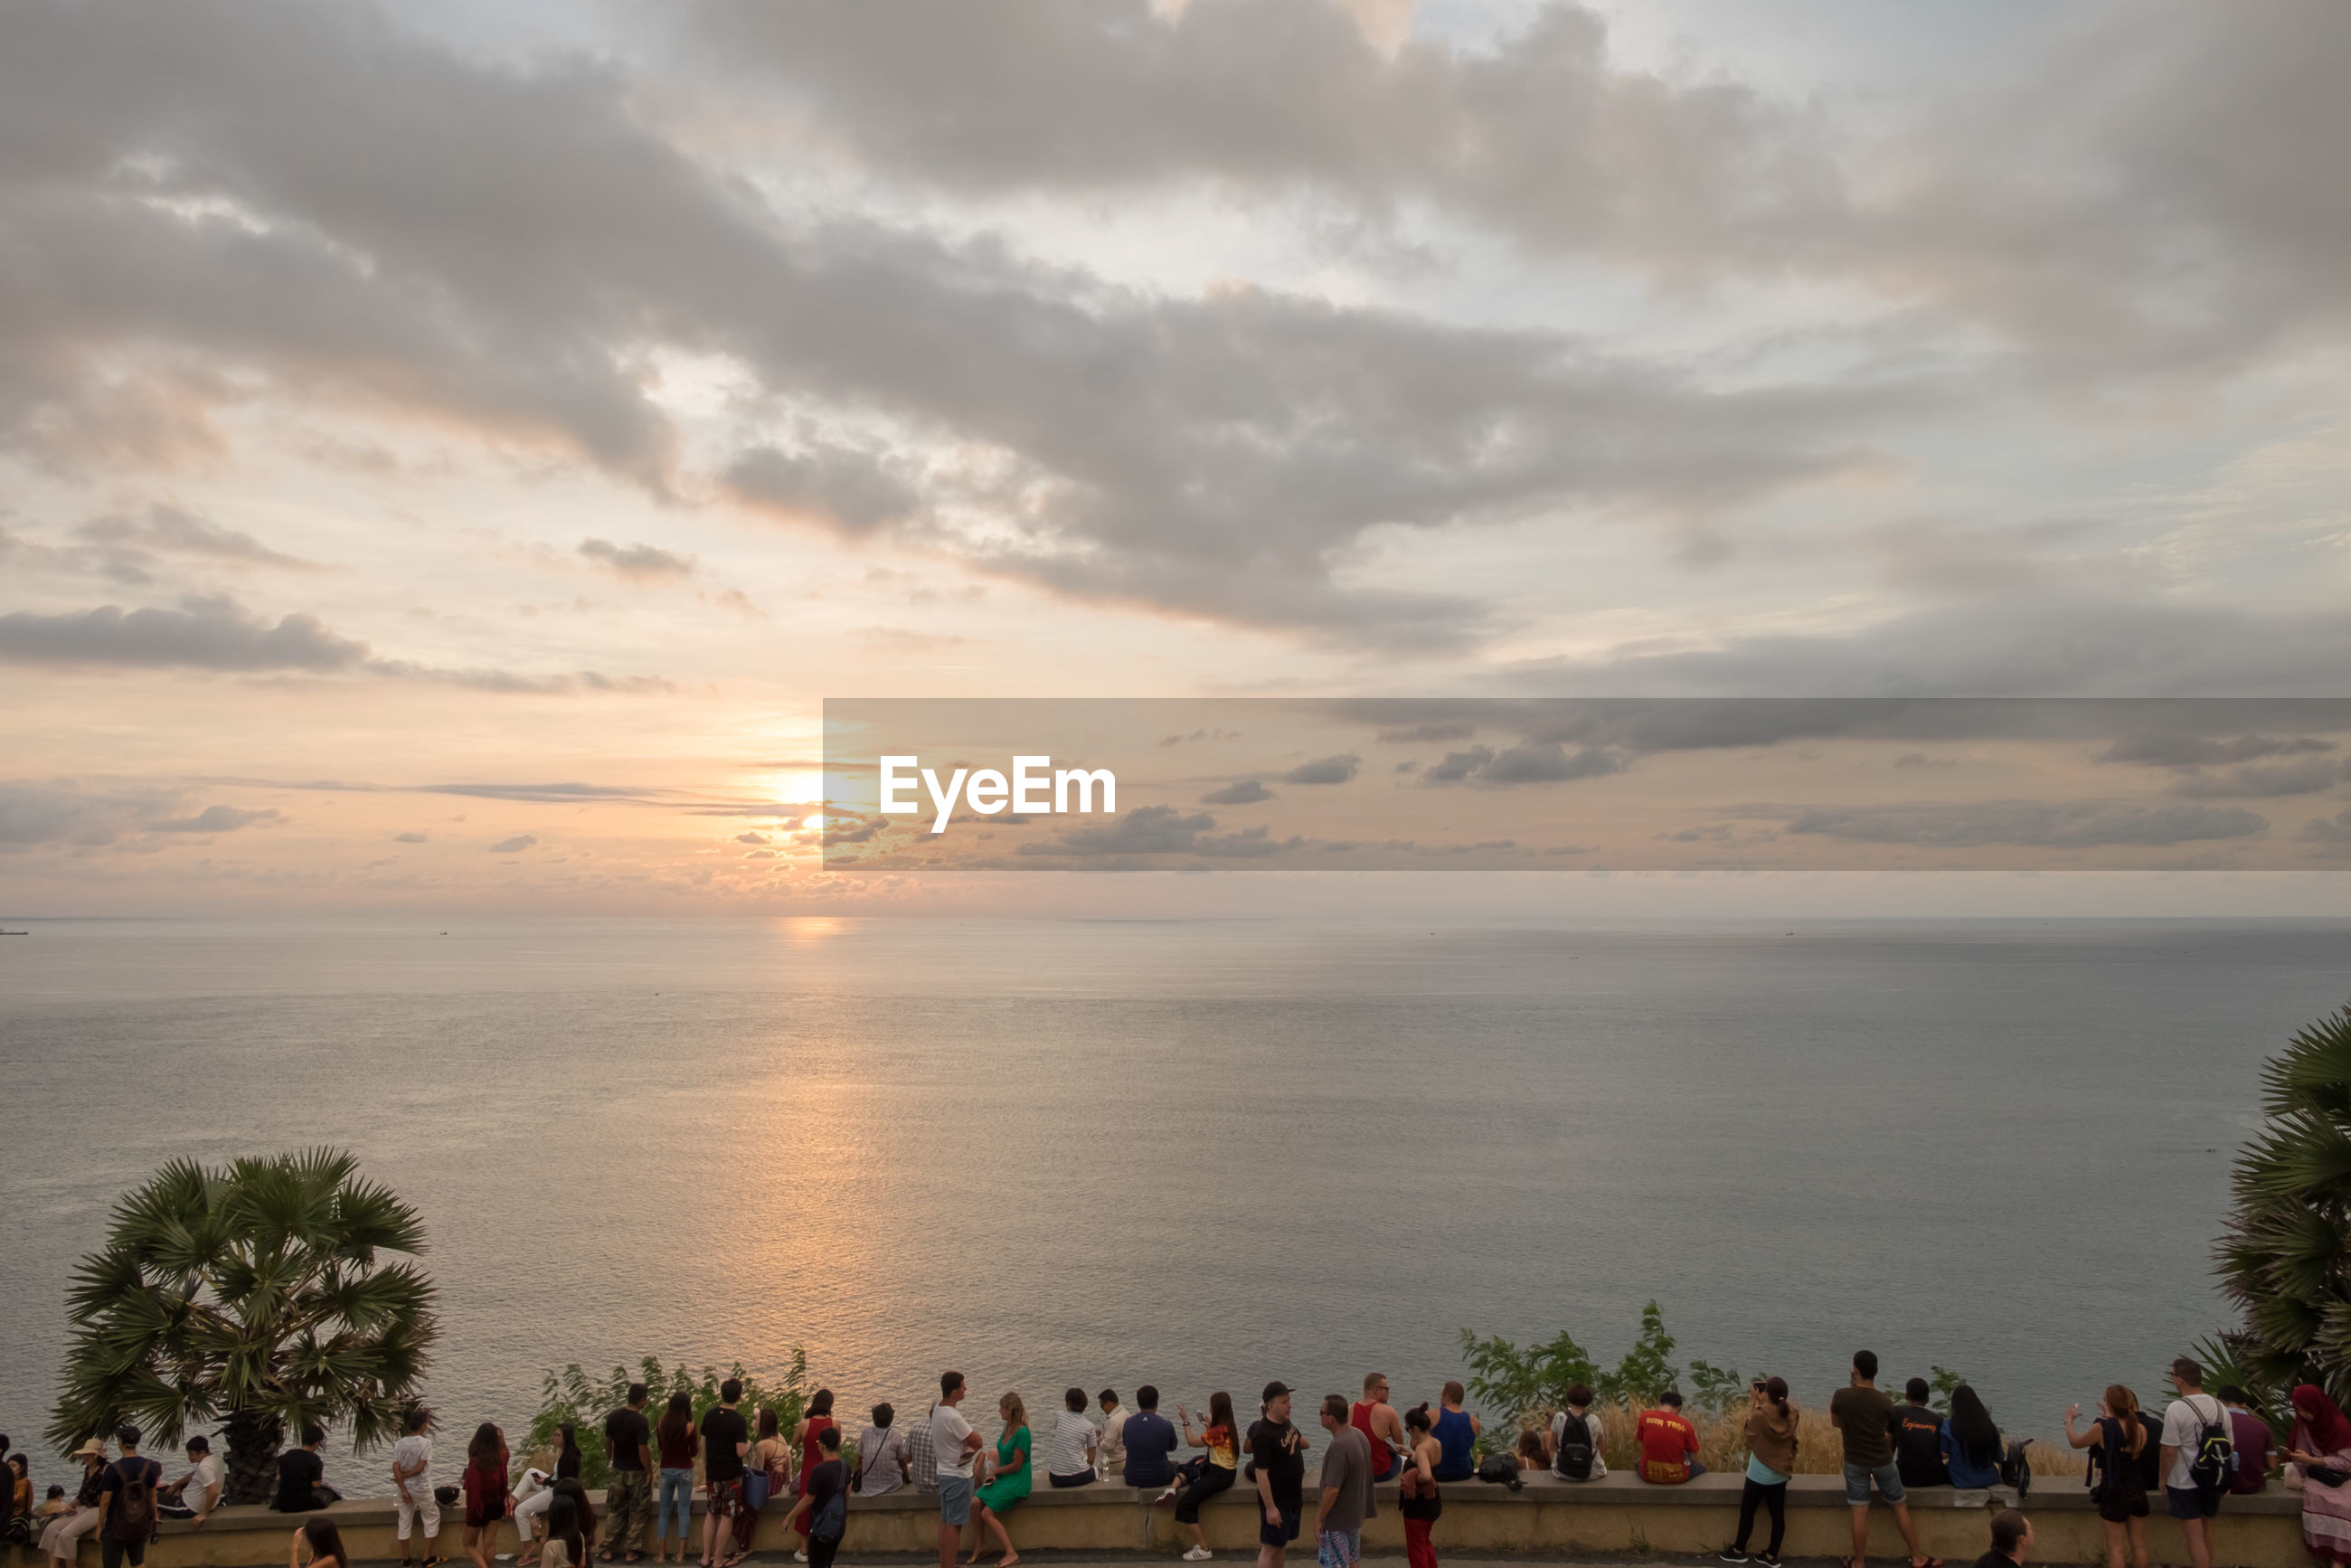 People bu sea against cloudy sky during sunset